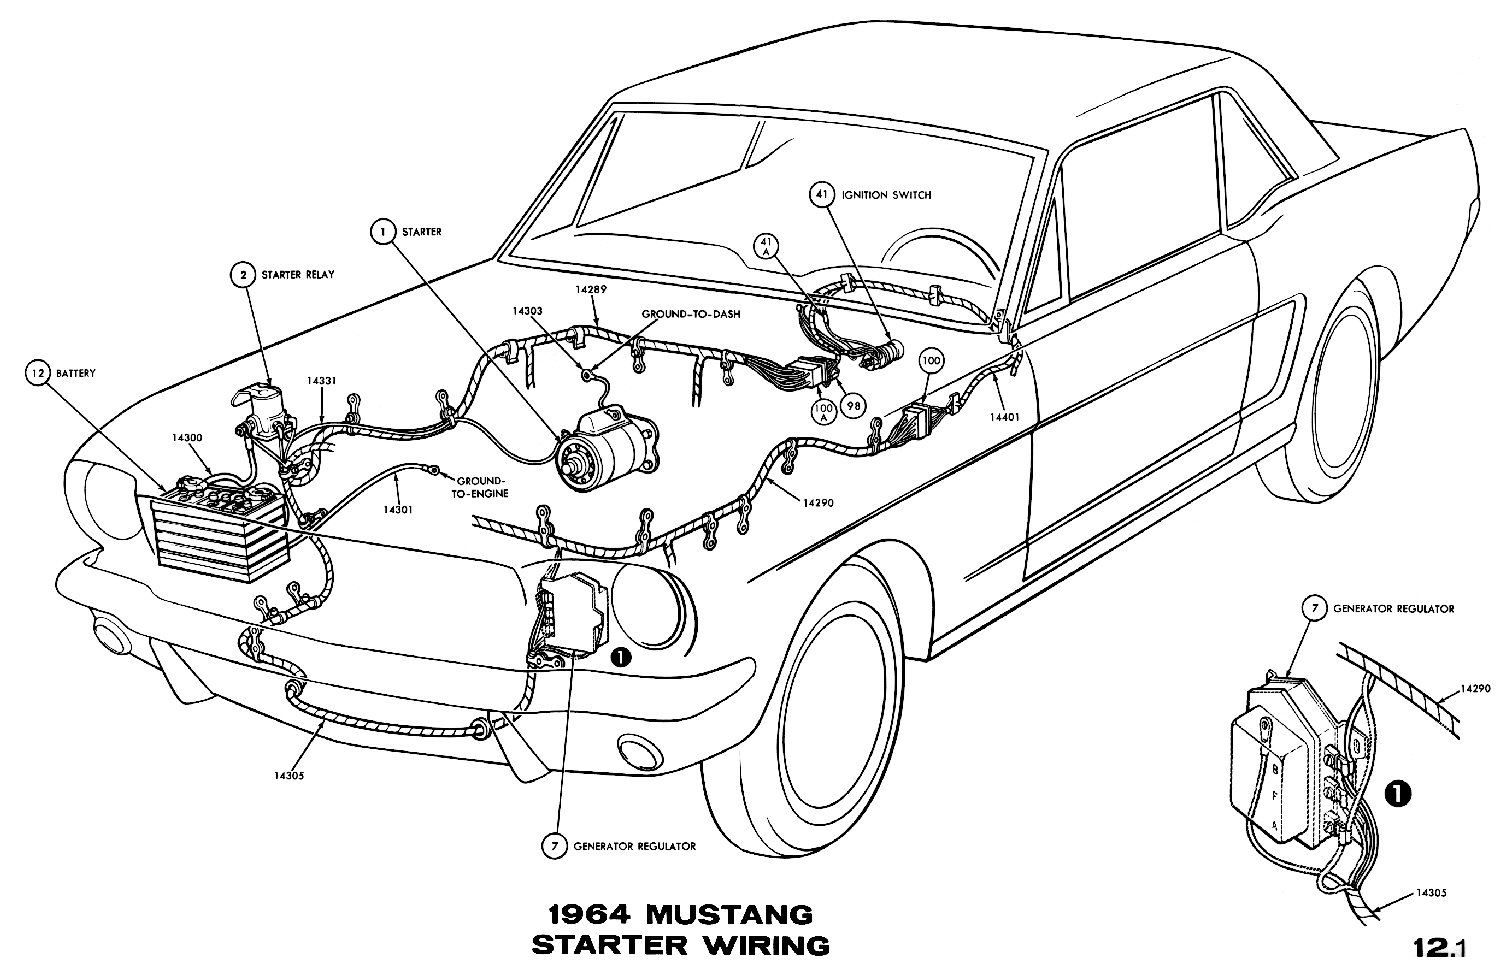 1964 Mustang Wiring Diagrams Average Joe Restoration 1972 Ford F100 Headlight Switch Diagram Sm1964d Starter Pictorial Or Schematic